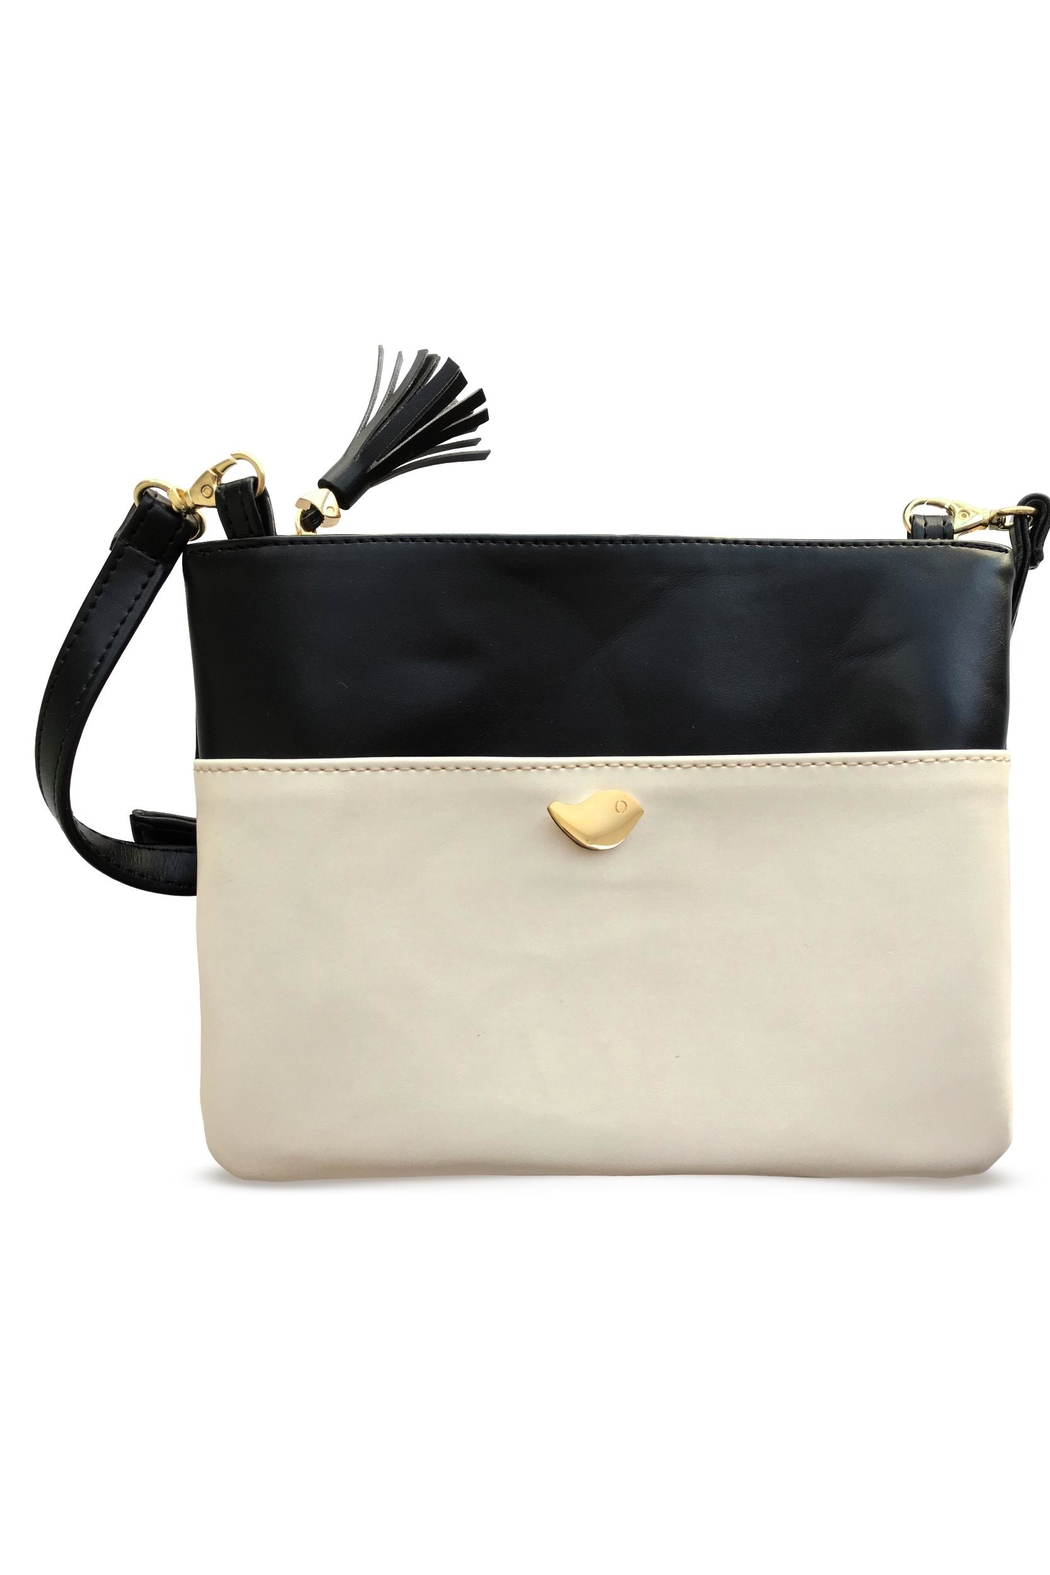 Cuca y Paloma Dahlia Oyster Crossbody - Front Cropped Image